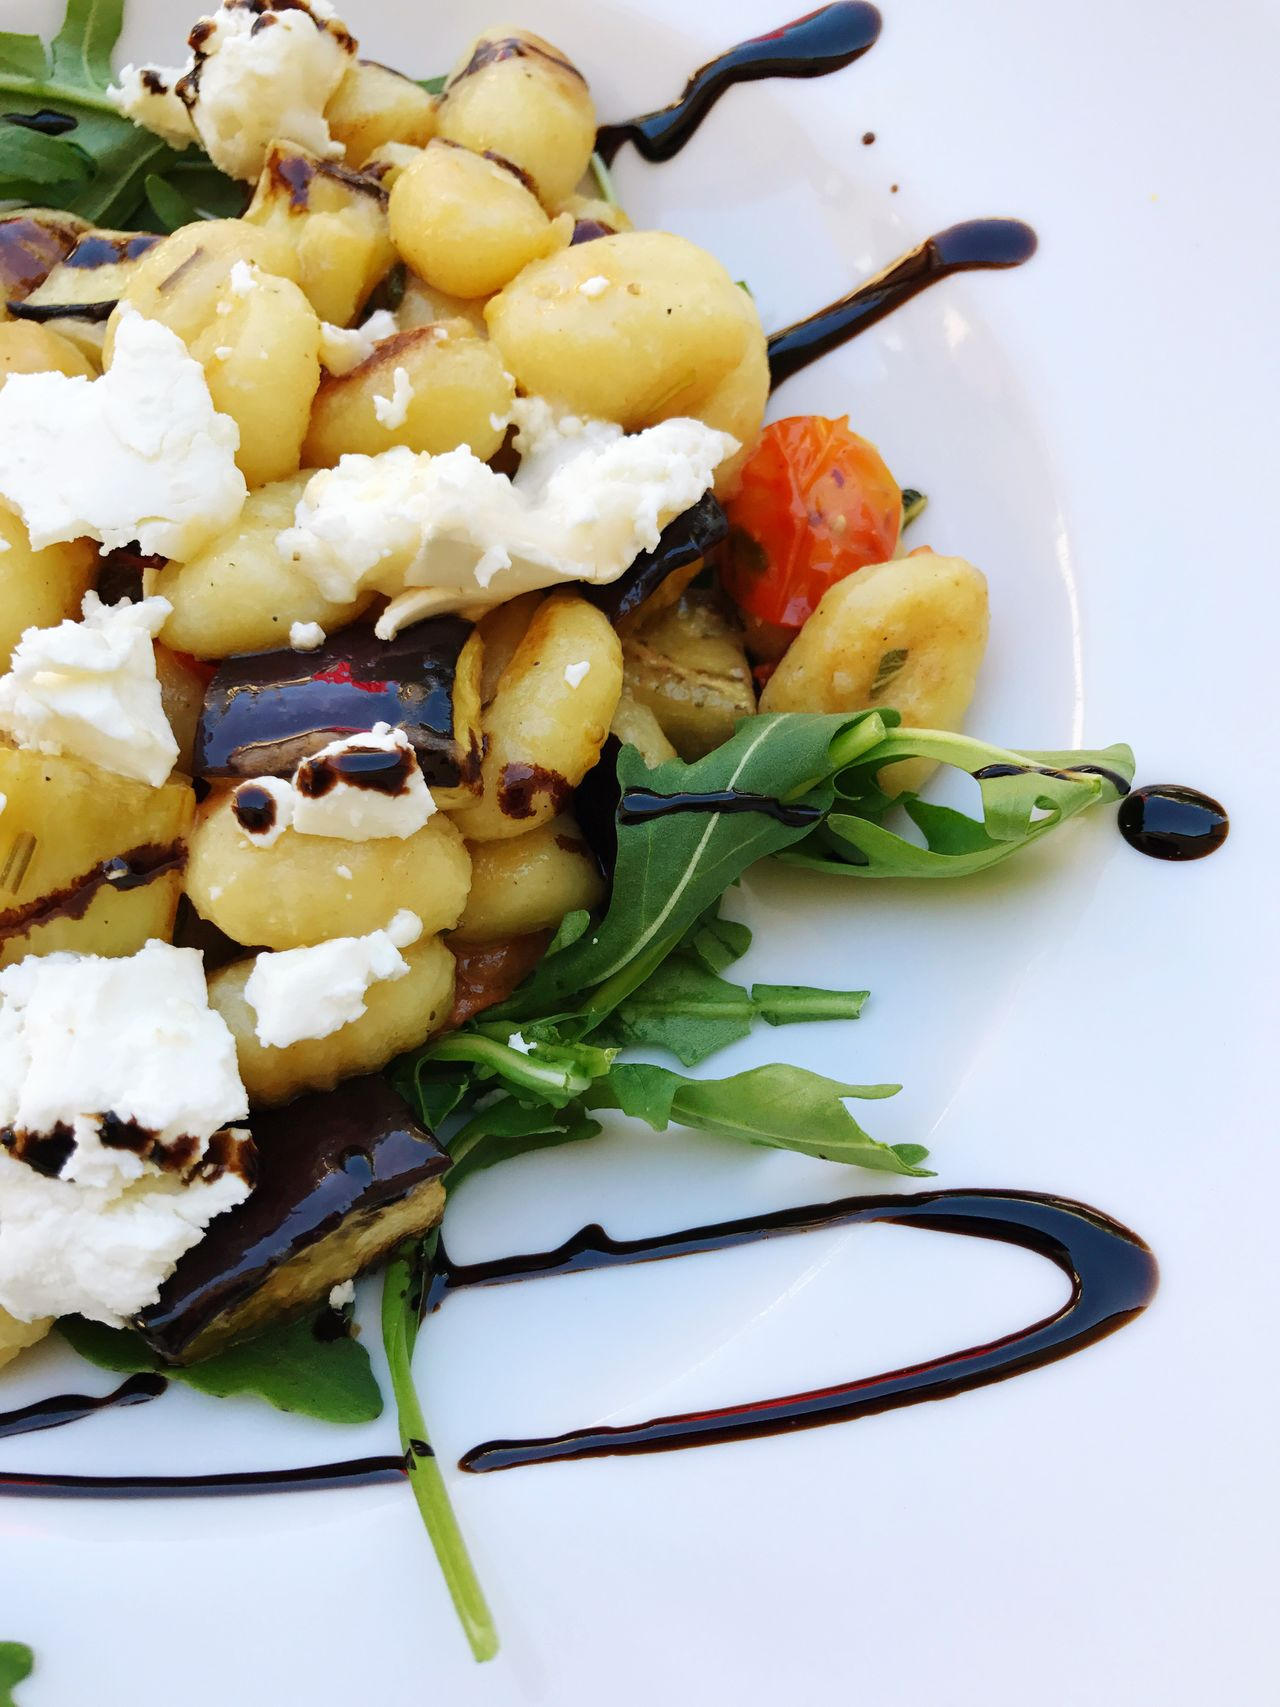 Gnocci Gnocchi Di Patate Food Goat Cheese Salad Lunch Vegetarian Food Food And Drink Freshness Healthy Eating Vegetable Ready-to-eat Salad Indoors  No People Plate Close-up Vegetarian Food Day